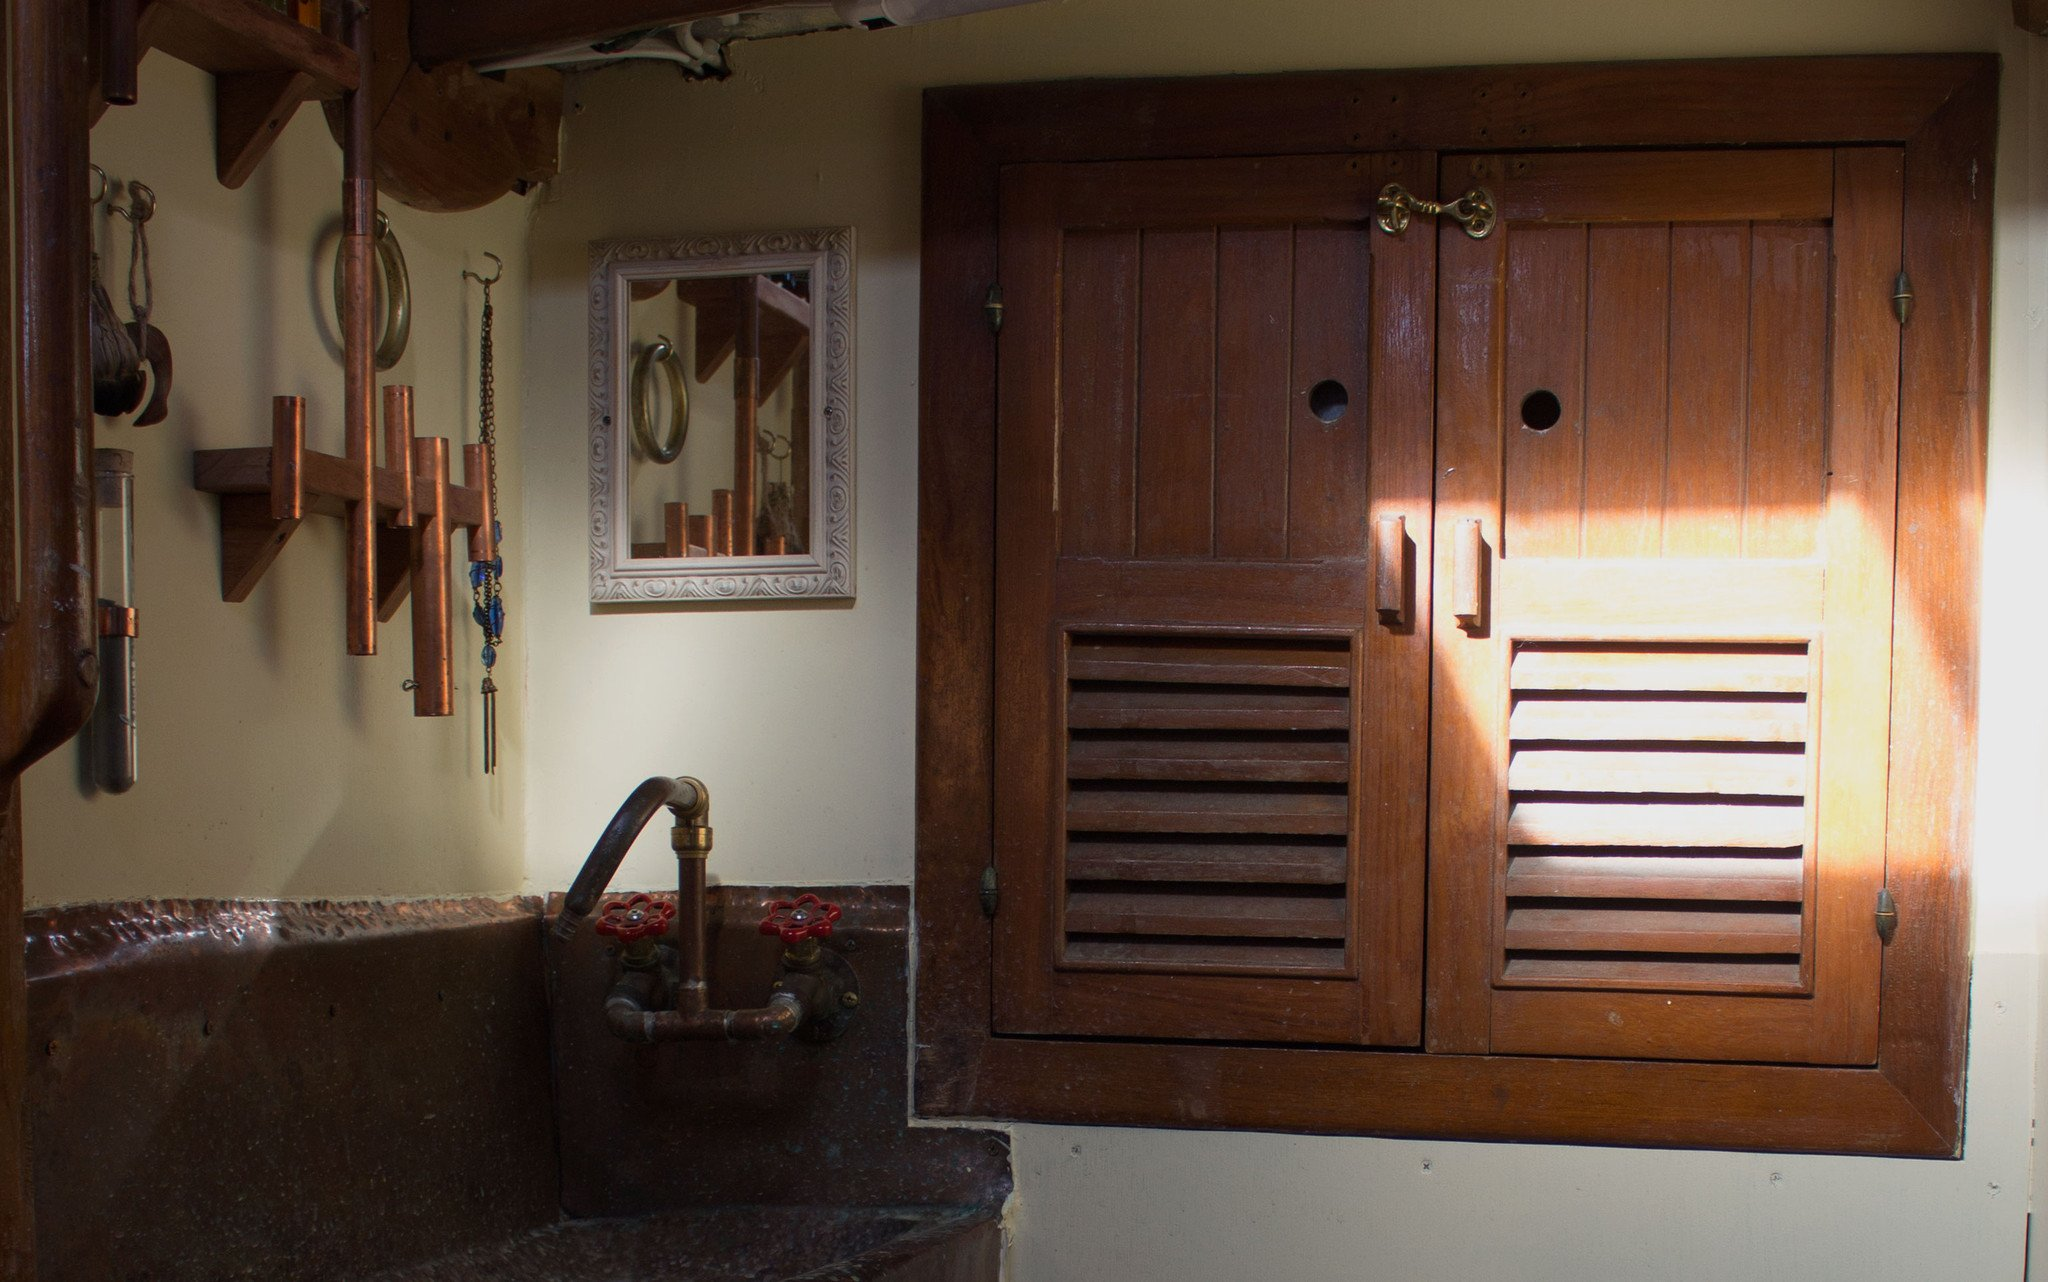 Sailboat Home Tour: Before Remodel